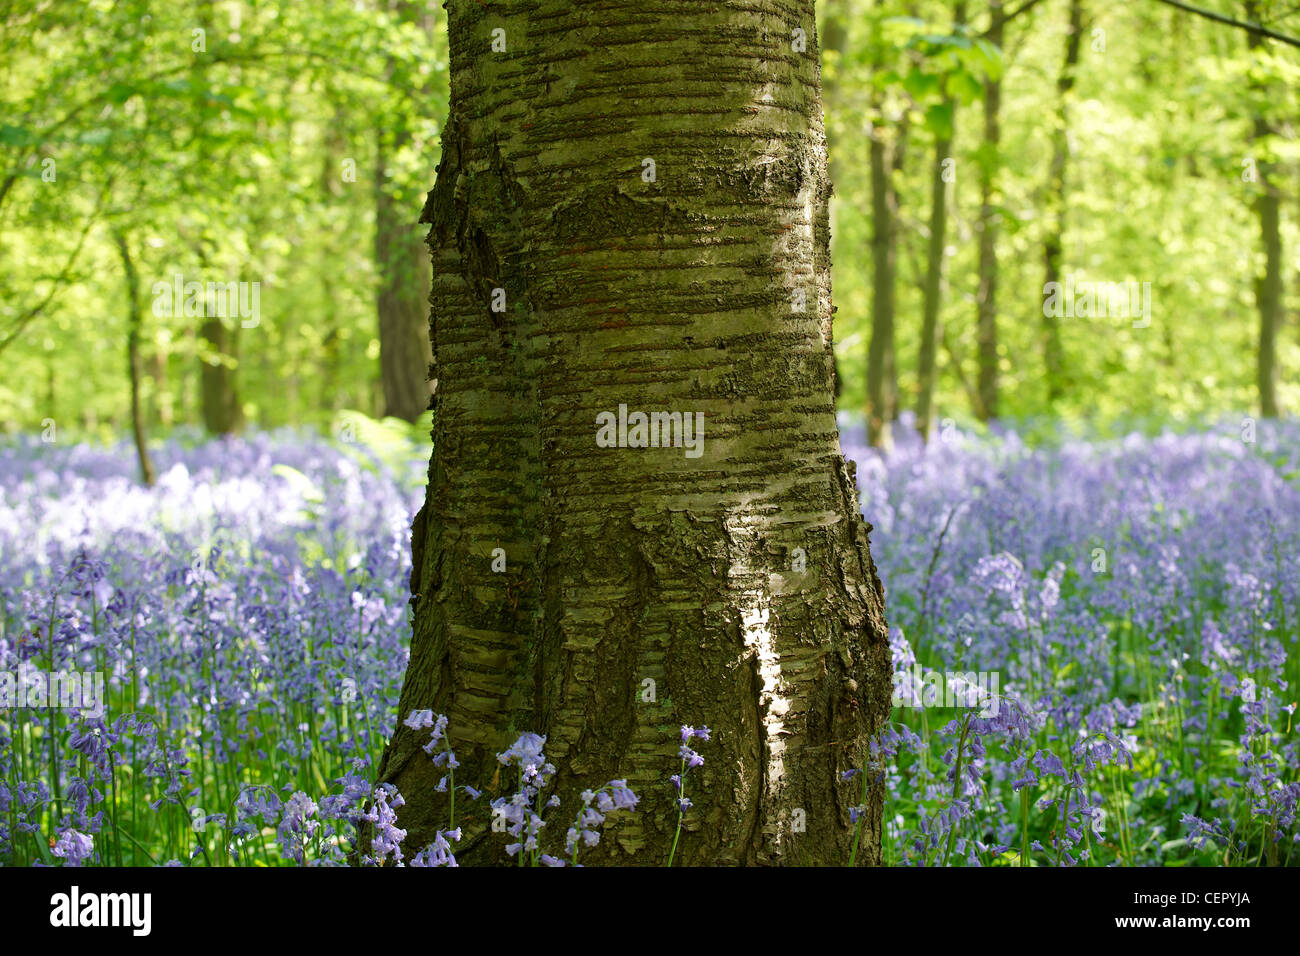 A tree standing in a wood full of Bluebells. Stock Photo